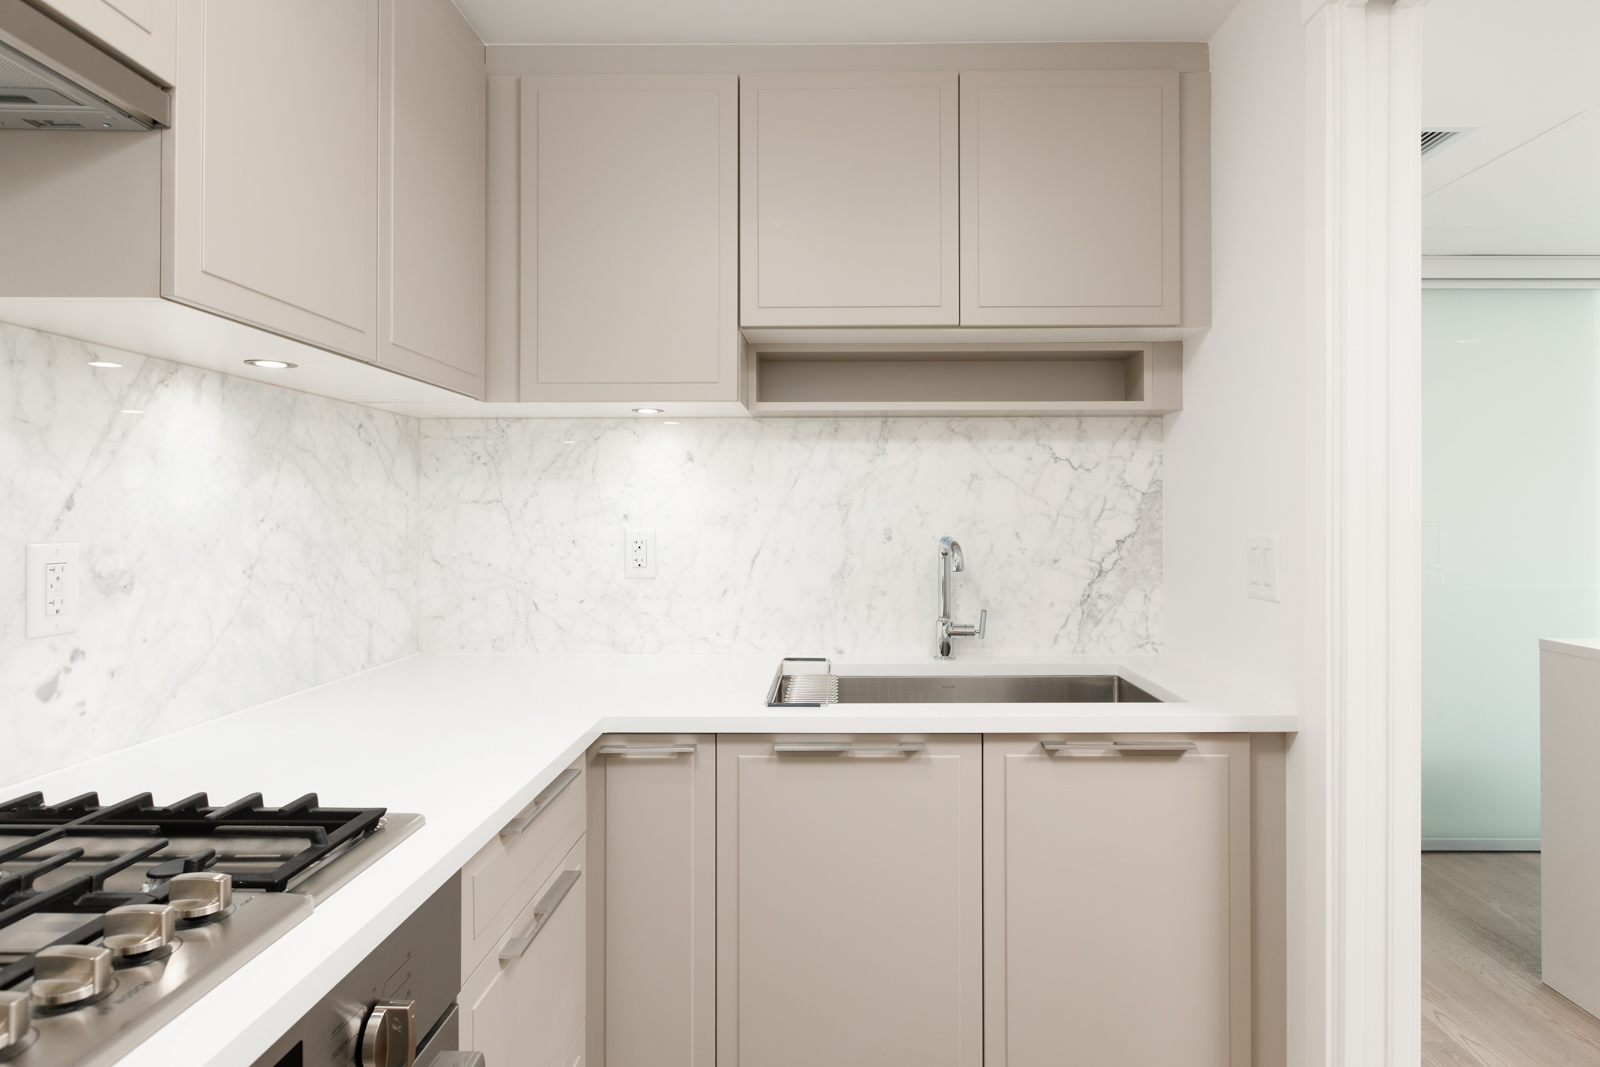 Kitchen area with beige cabinetry inside Vancouver townhome located in the Marpole community.